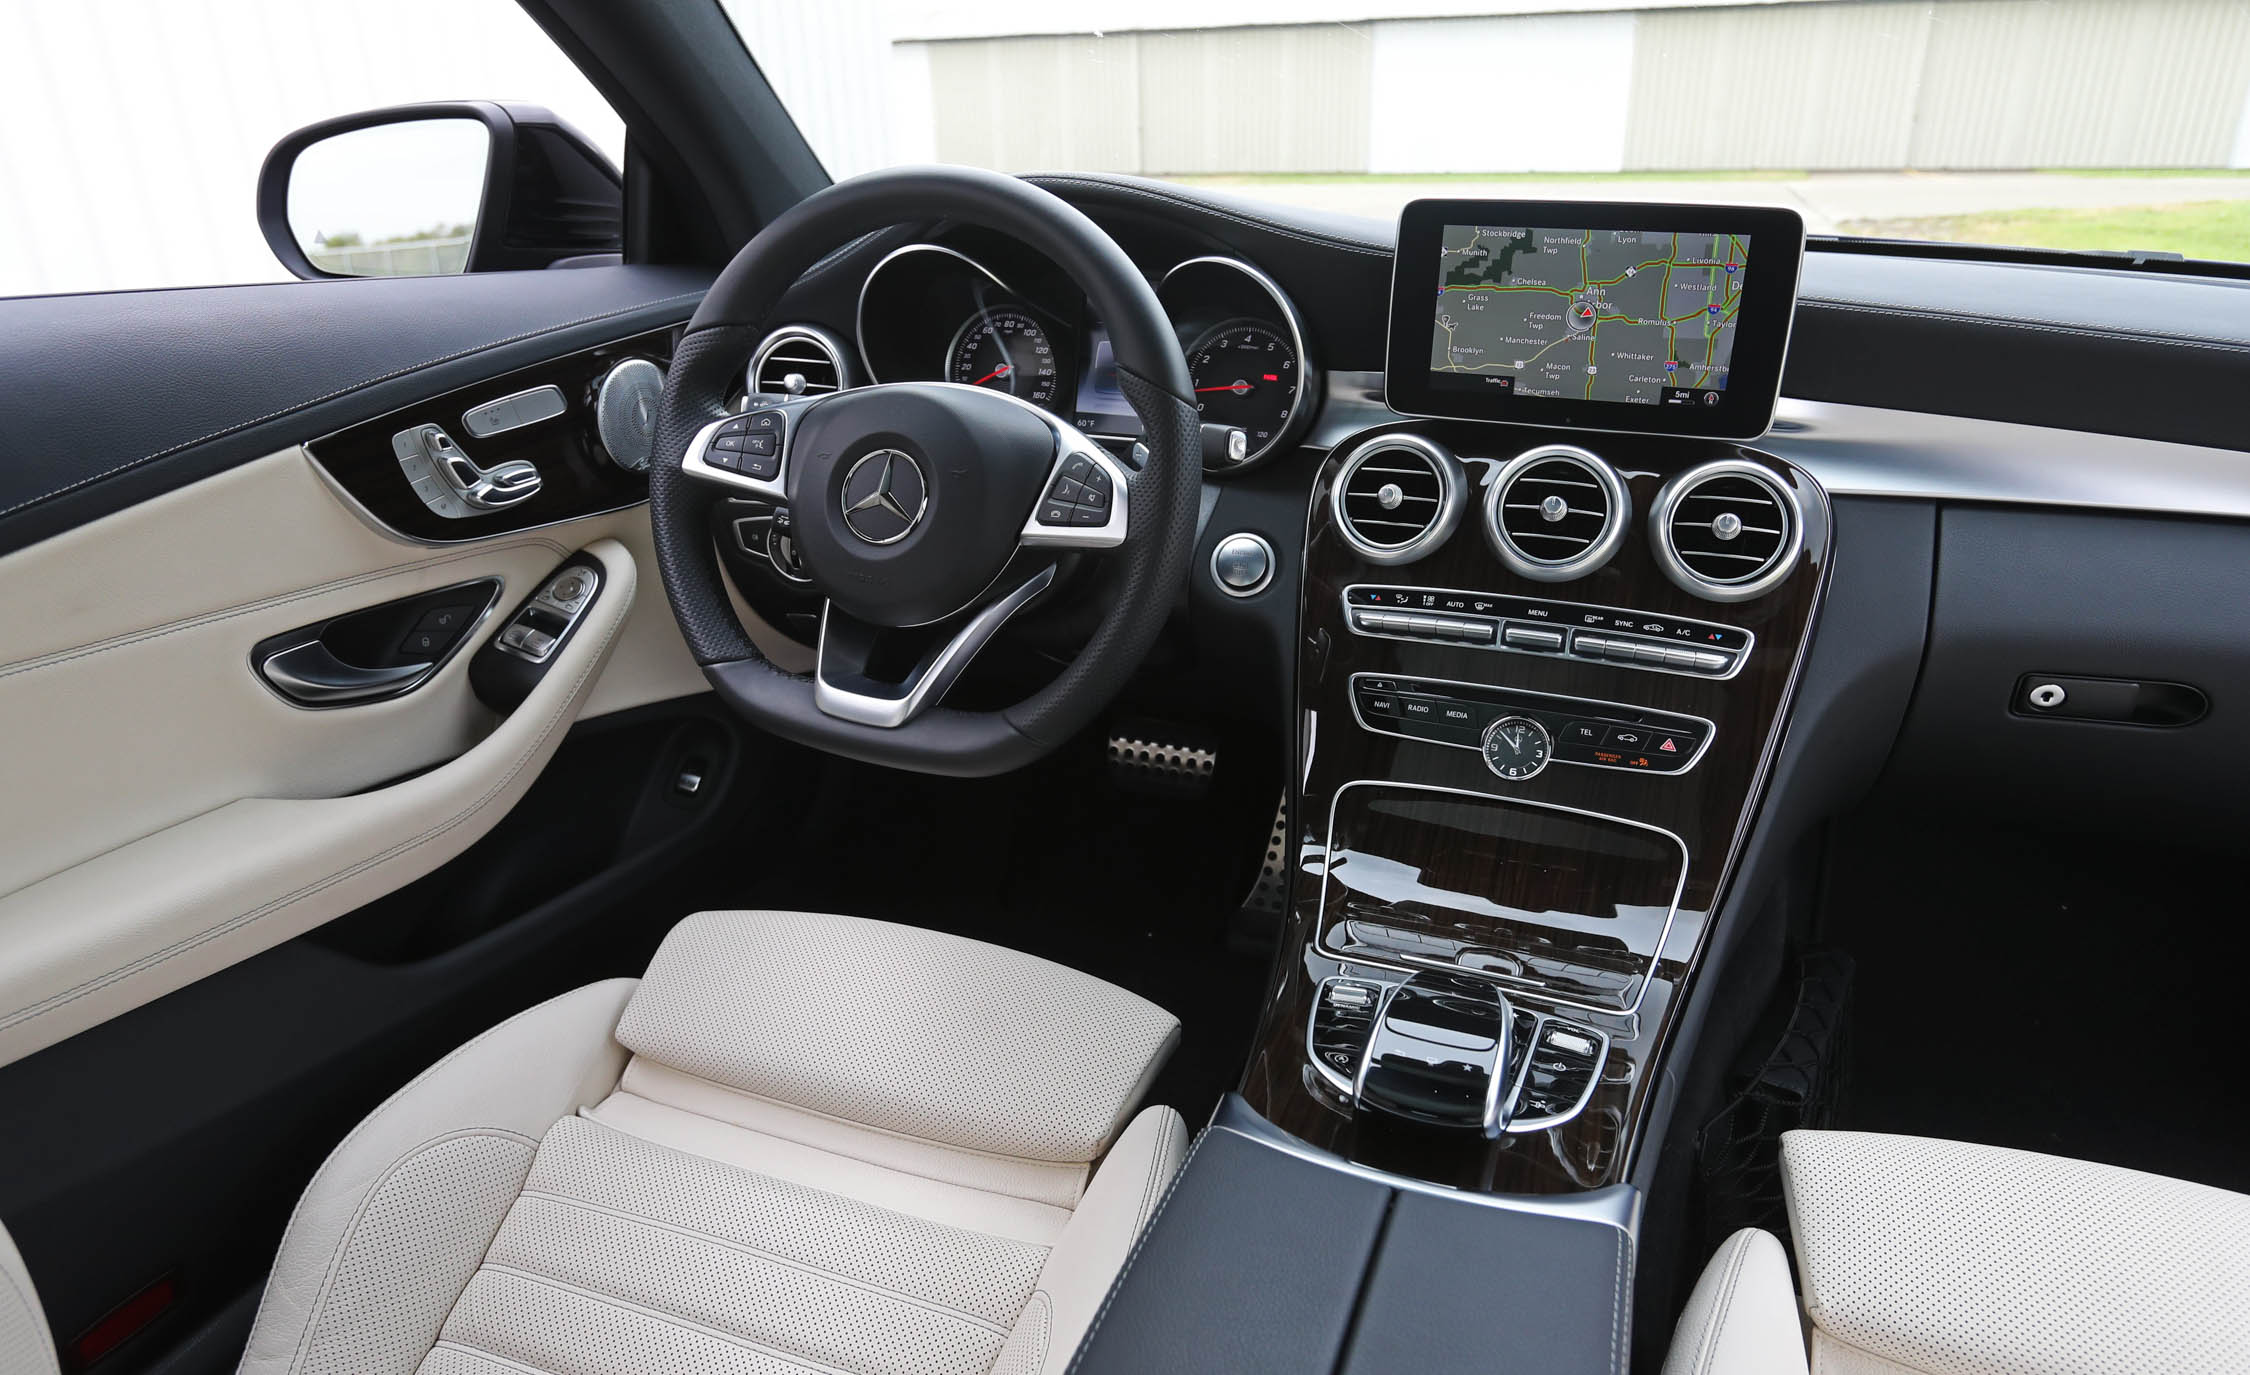 2017 Mercedes Benz C300 4MATIC Coupe Interior Dashboard (View 16 of 44)